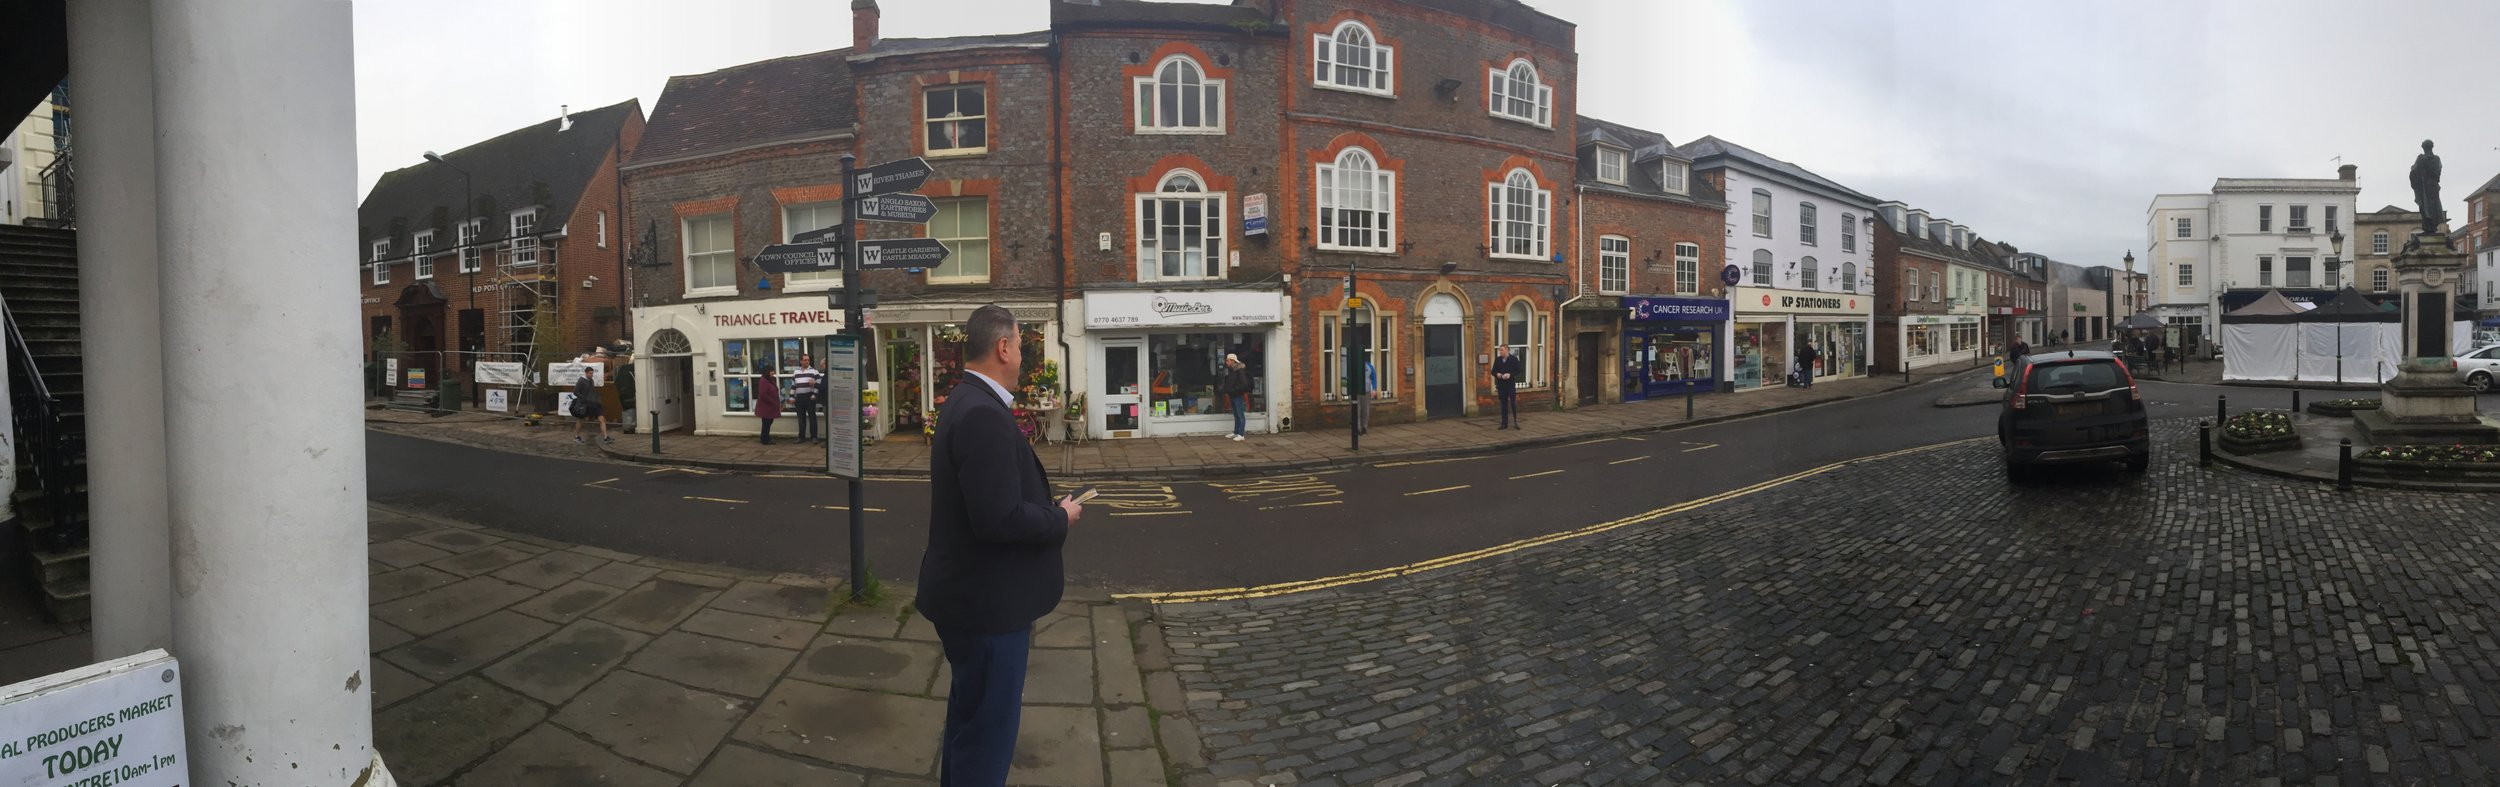 Preaching the Word on Wallingford Market Place: 04 February 2017